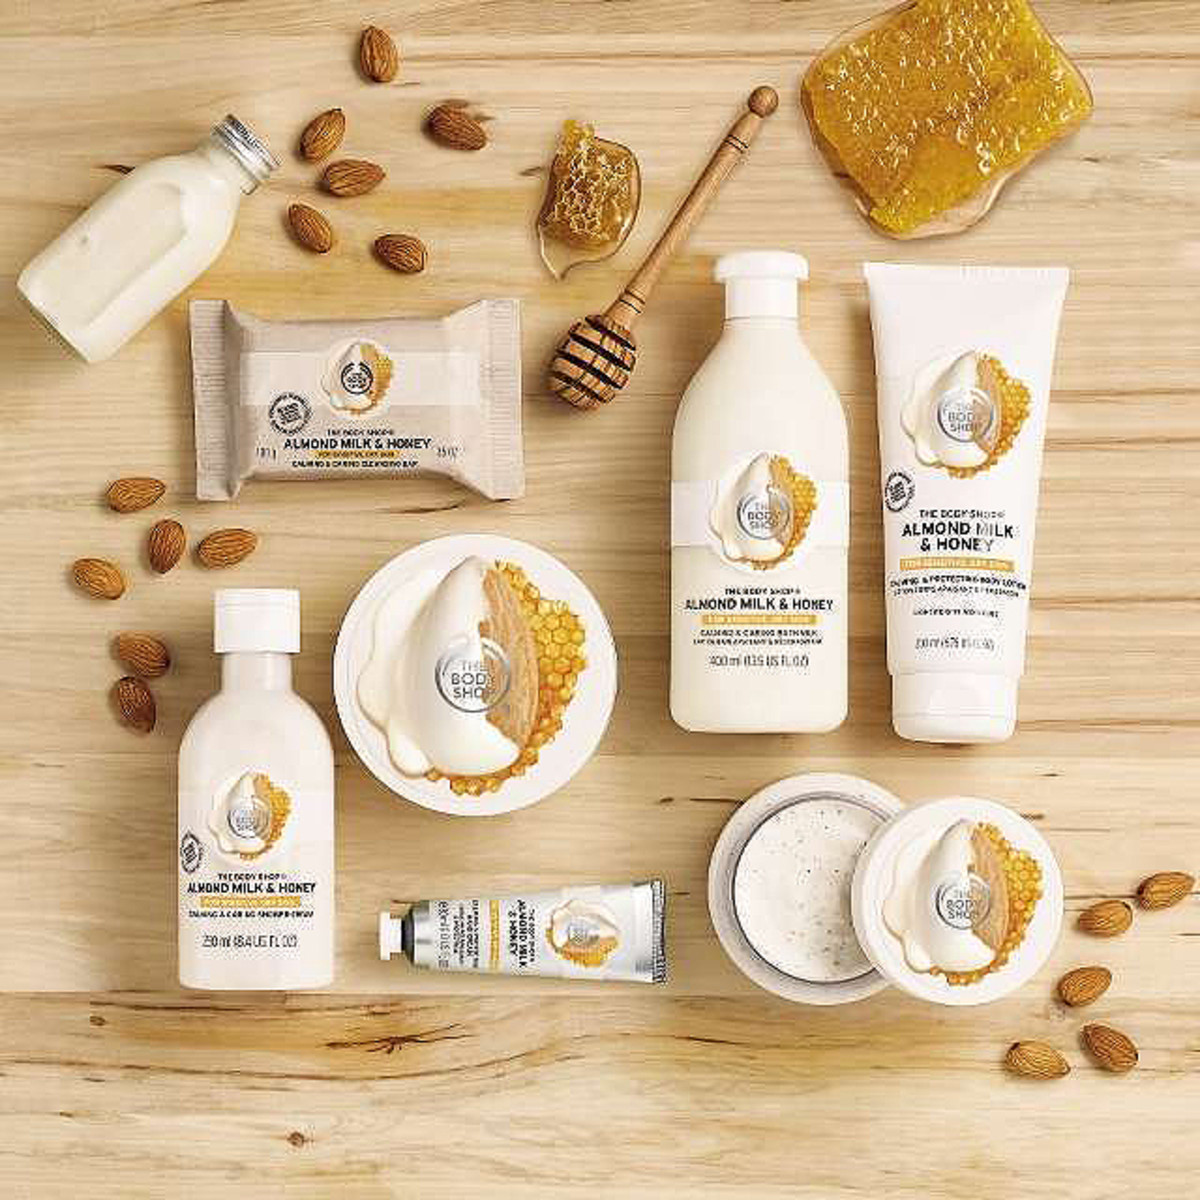 The Body Shop Almond Milk & Honey collection for sensitive, dry skin